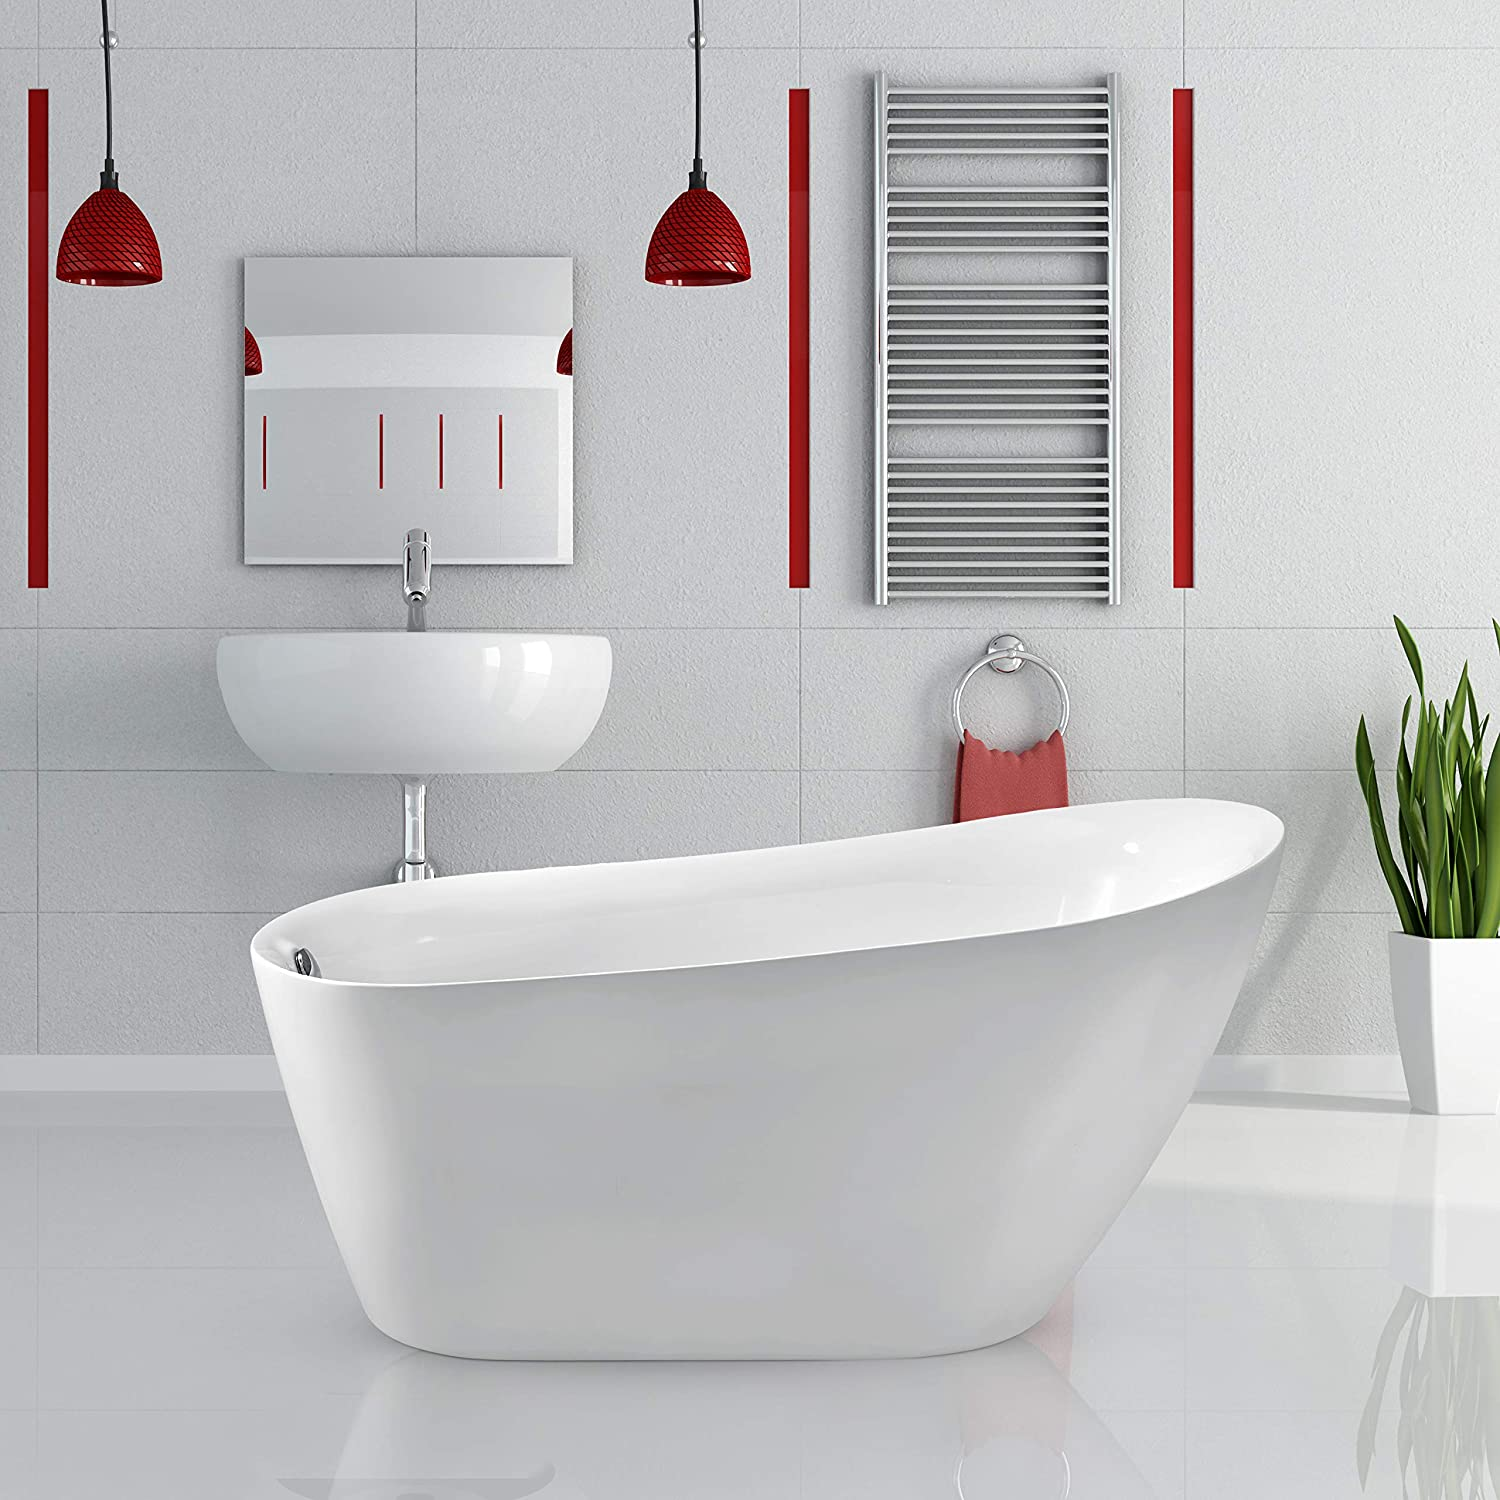 Streamline Freestanding Soaking 59 N 280 59fswh Fm Acrylic Bathtub White Comes With Internal Drain And Chrome Overflow Bamboo Tray Included Amazon Com